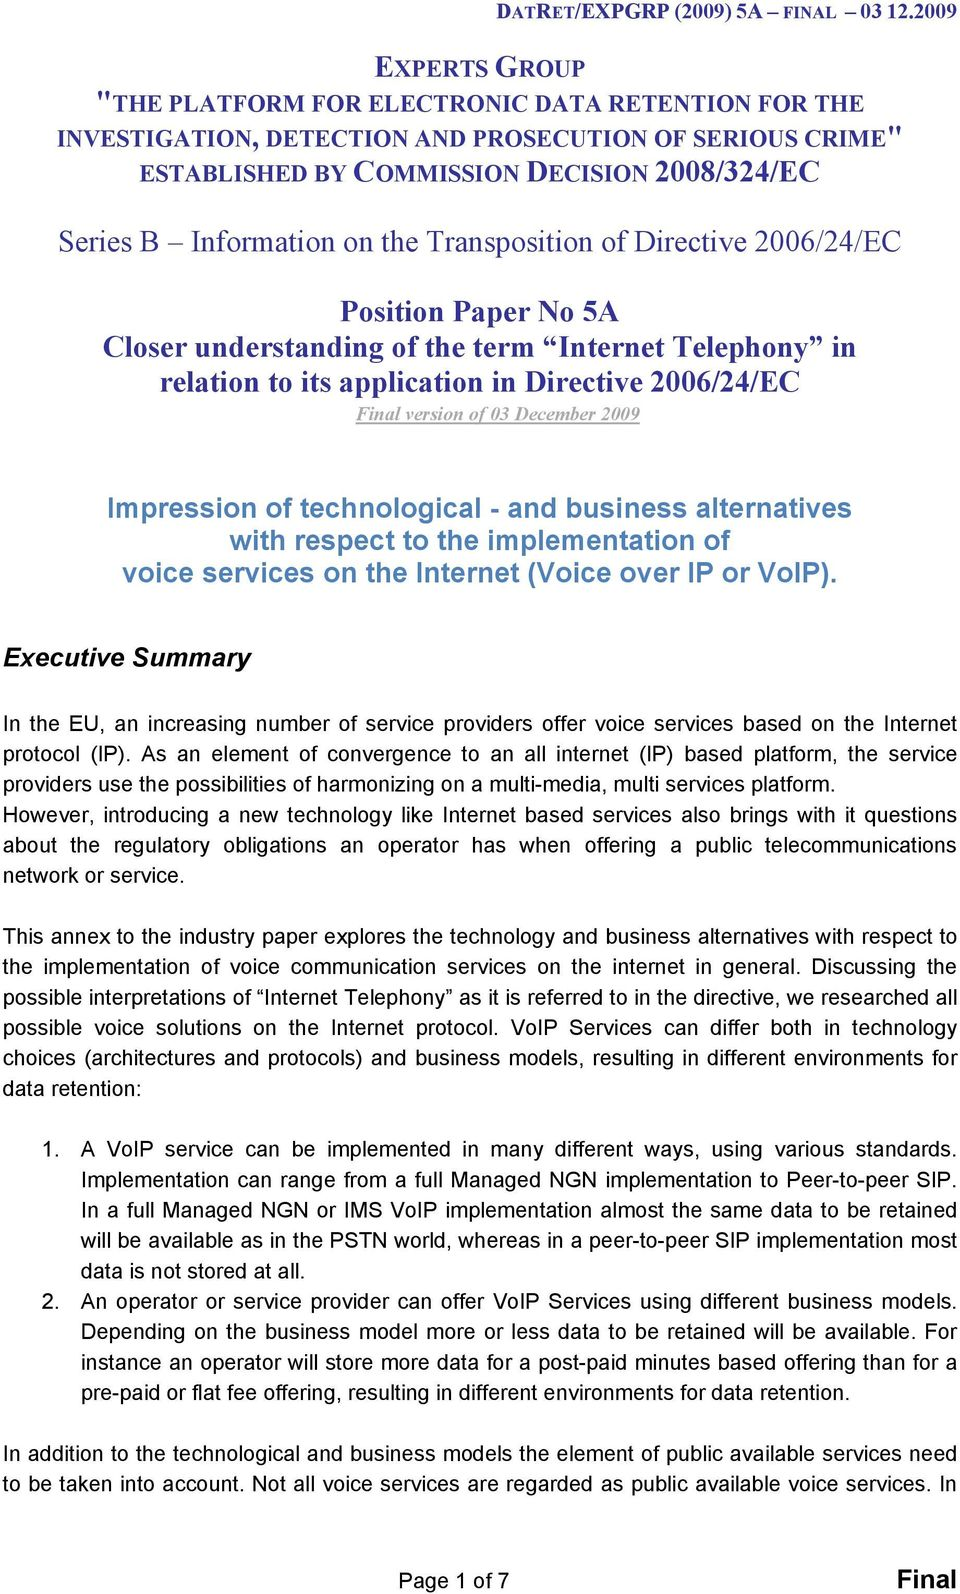 Transposition of Directive 2006/24/EC Position Paper No 5 Closer understanding of the term Internet Telephony in relation to its application in Directive 2006/24/EC version of 03 December 2009